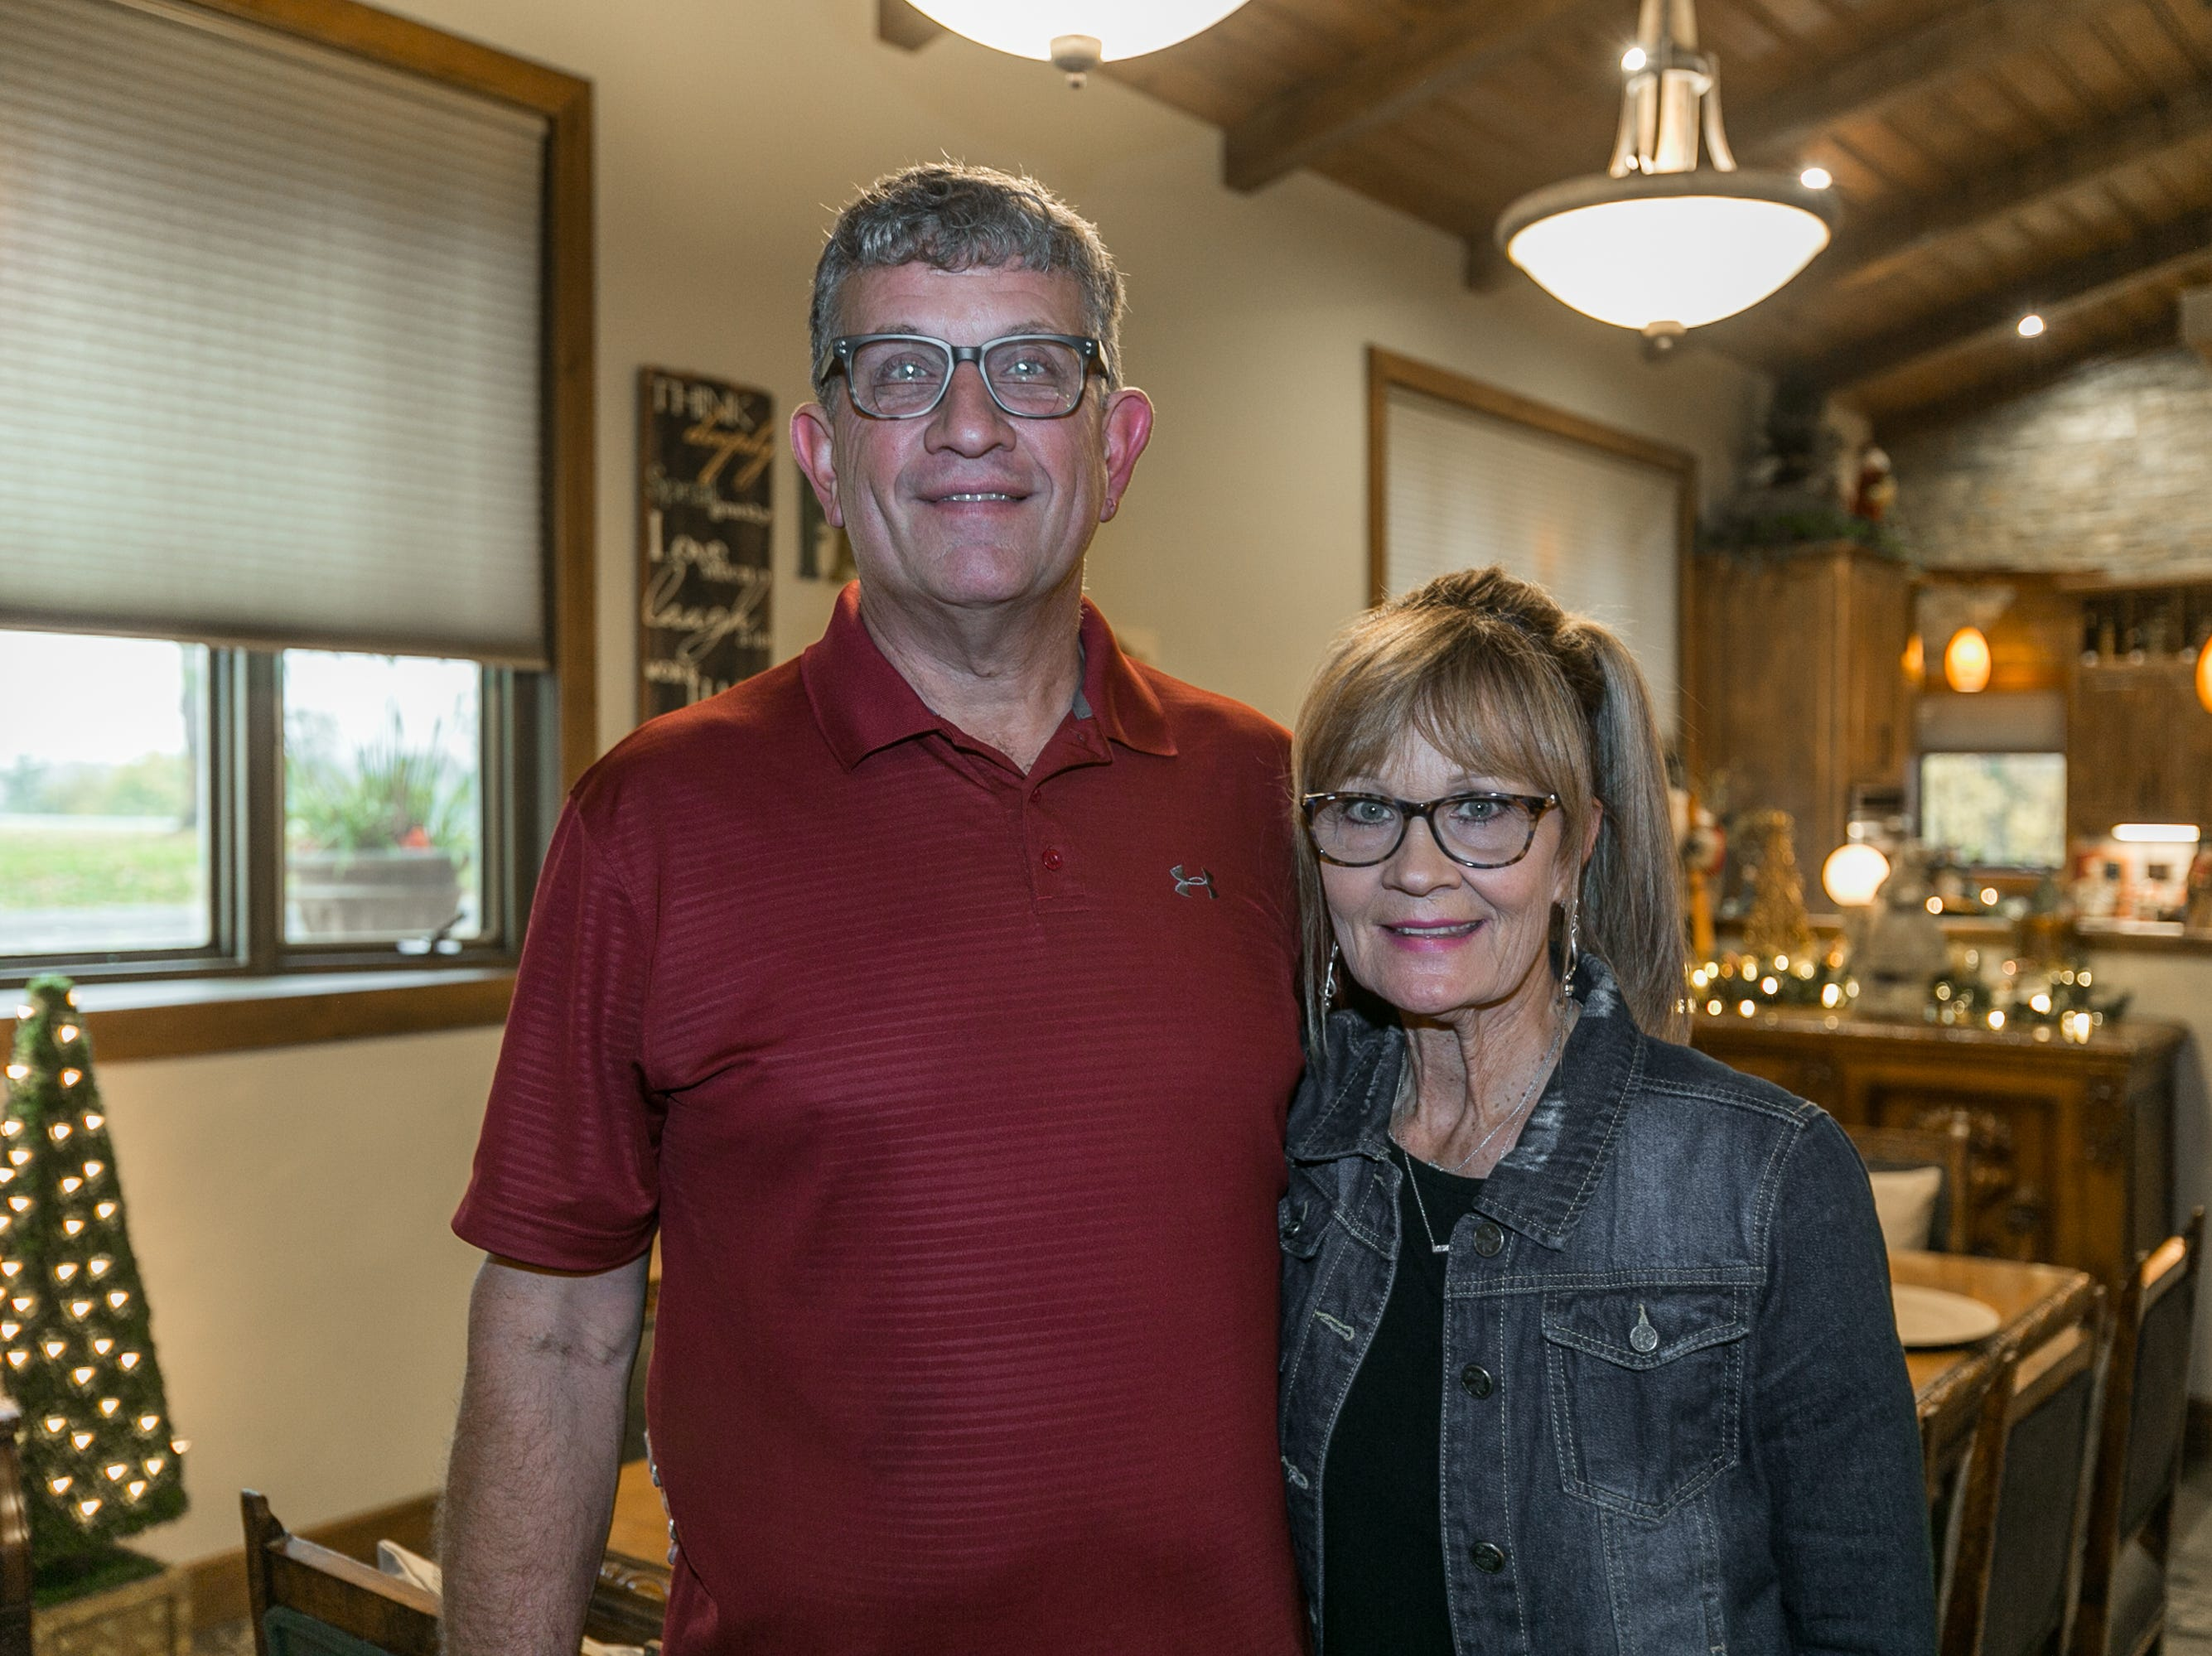 Sharon and Phil Noah lived in their home throughout the two-year renovation process.